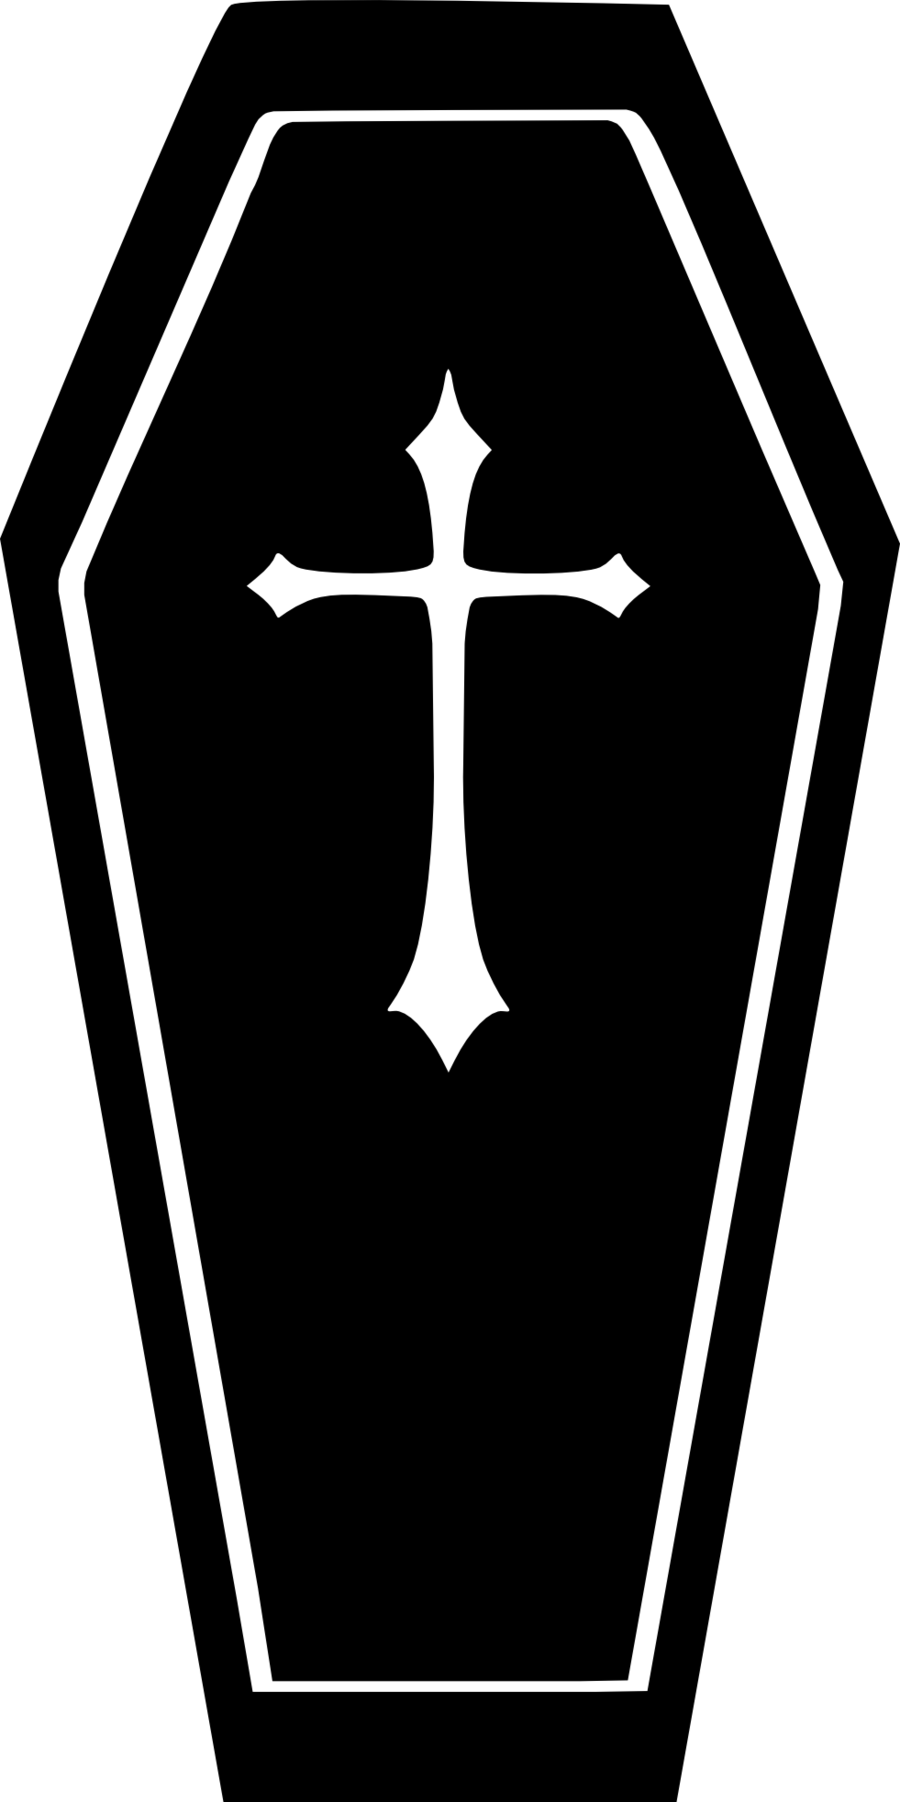 jpg royalty free Coffin clipart silhouette